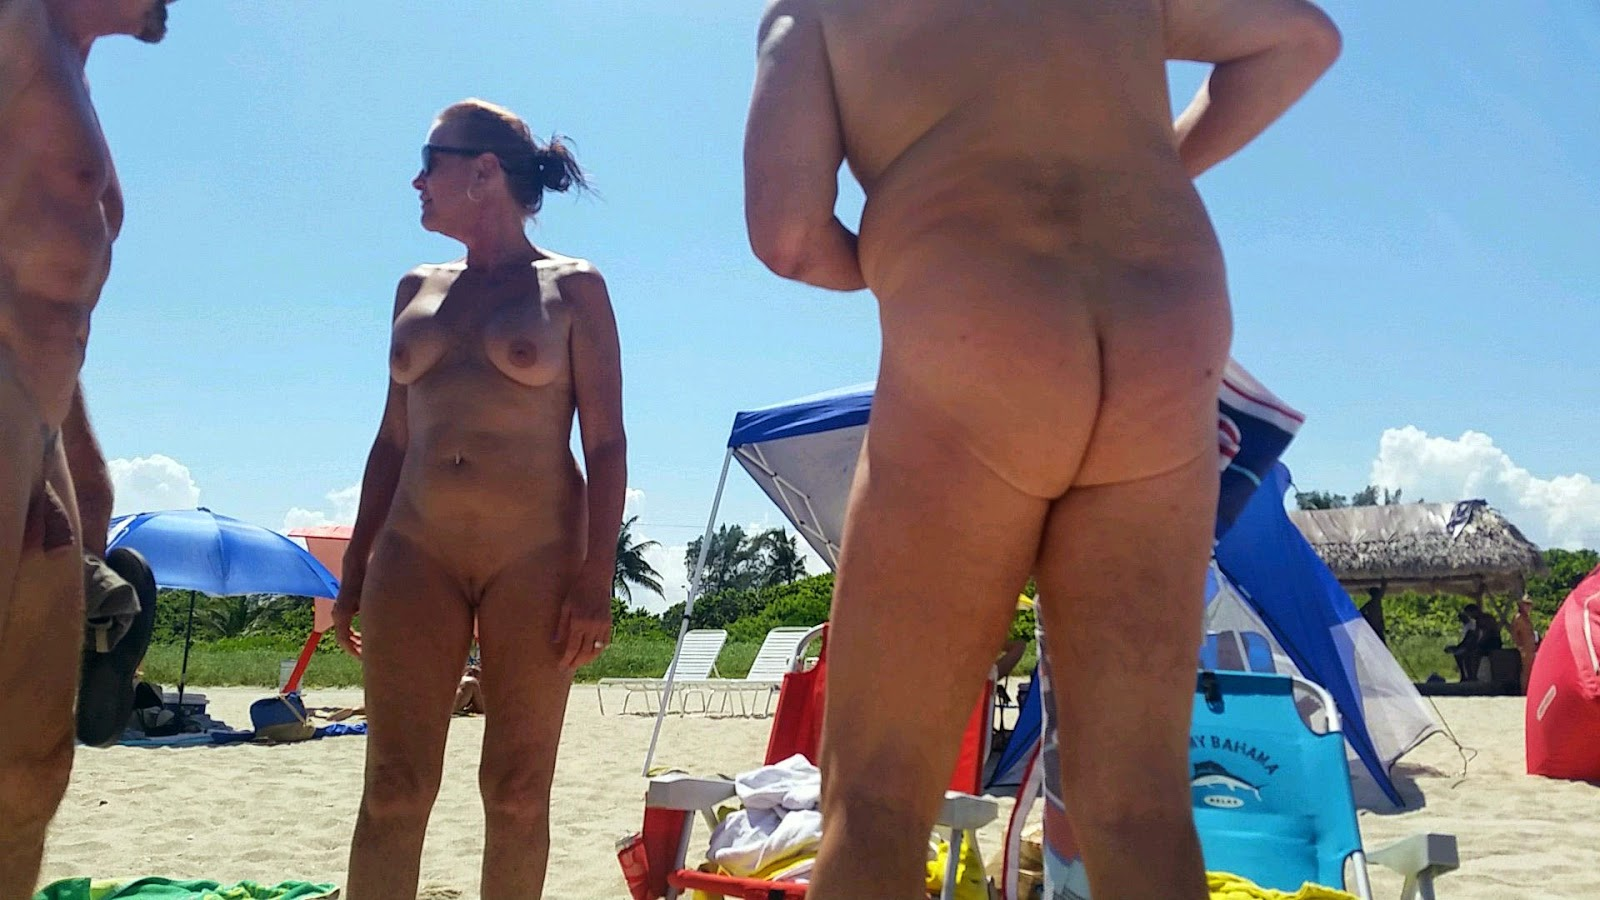 Remarkable, rather Haulover beach fucking video curious